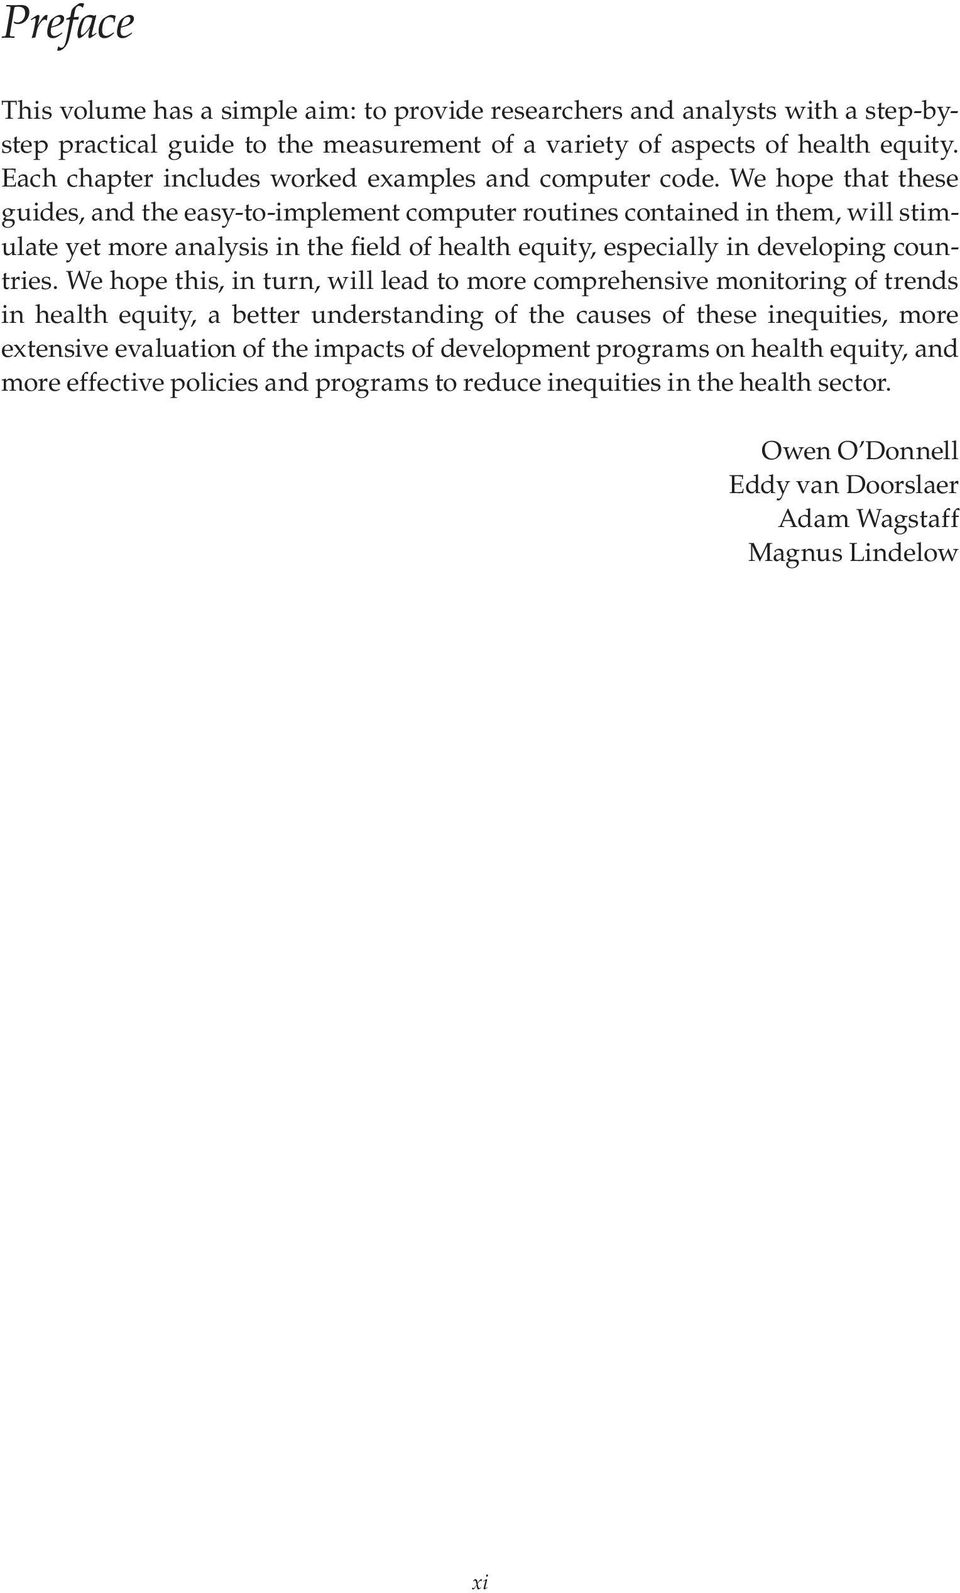 We hope that these guides, and the easy-to-implement computer routines contained in them, will stimulate yet more analysis in the field of health equity, especially in developing countries.